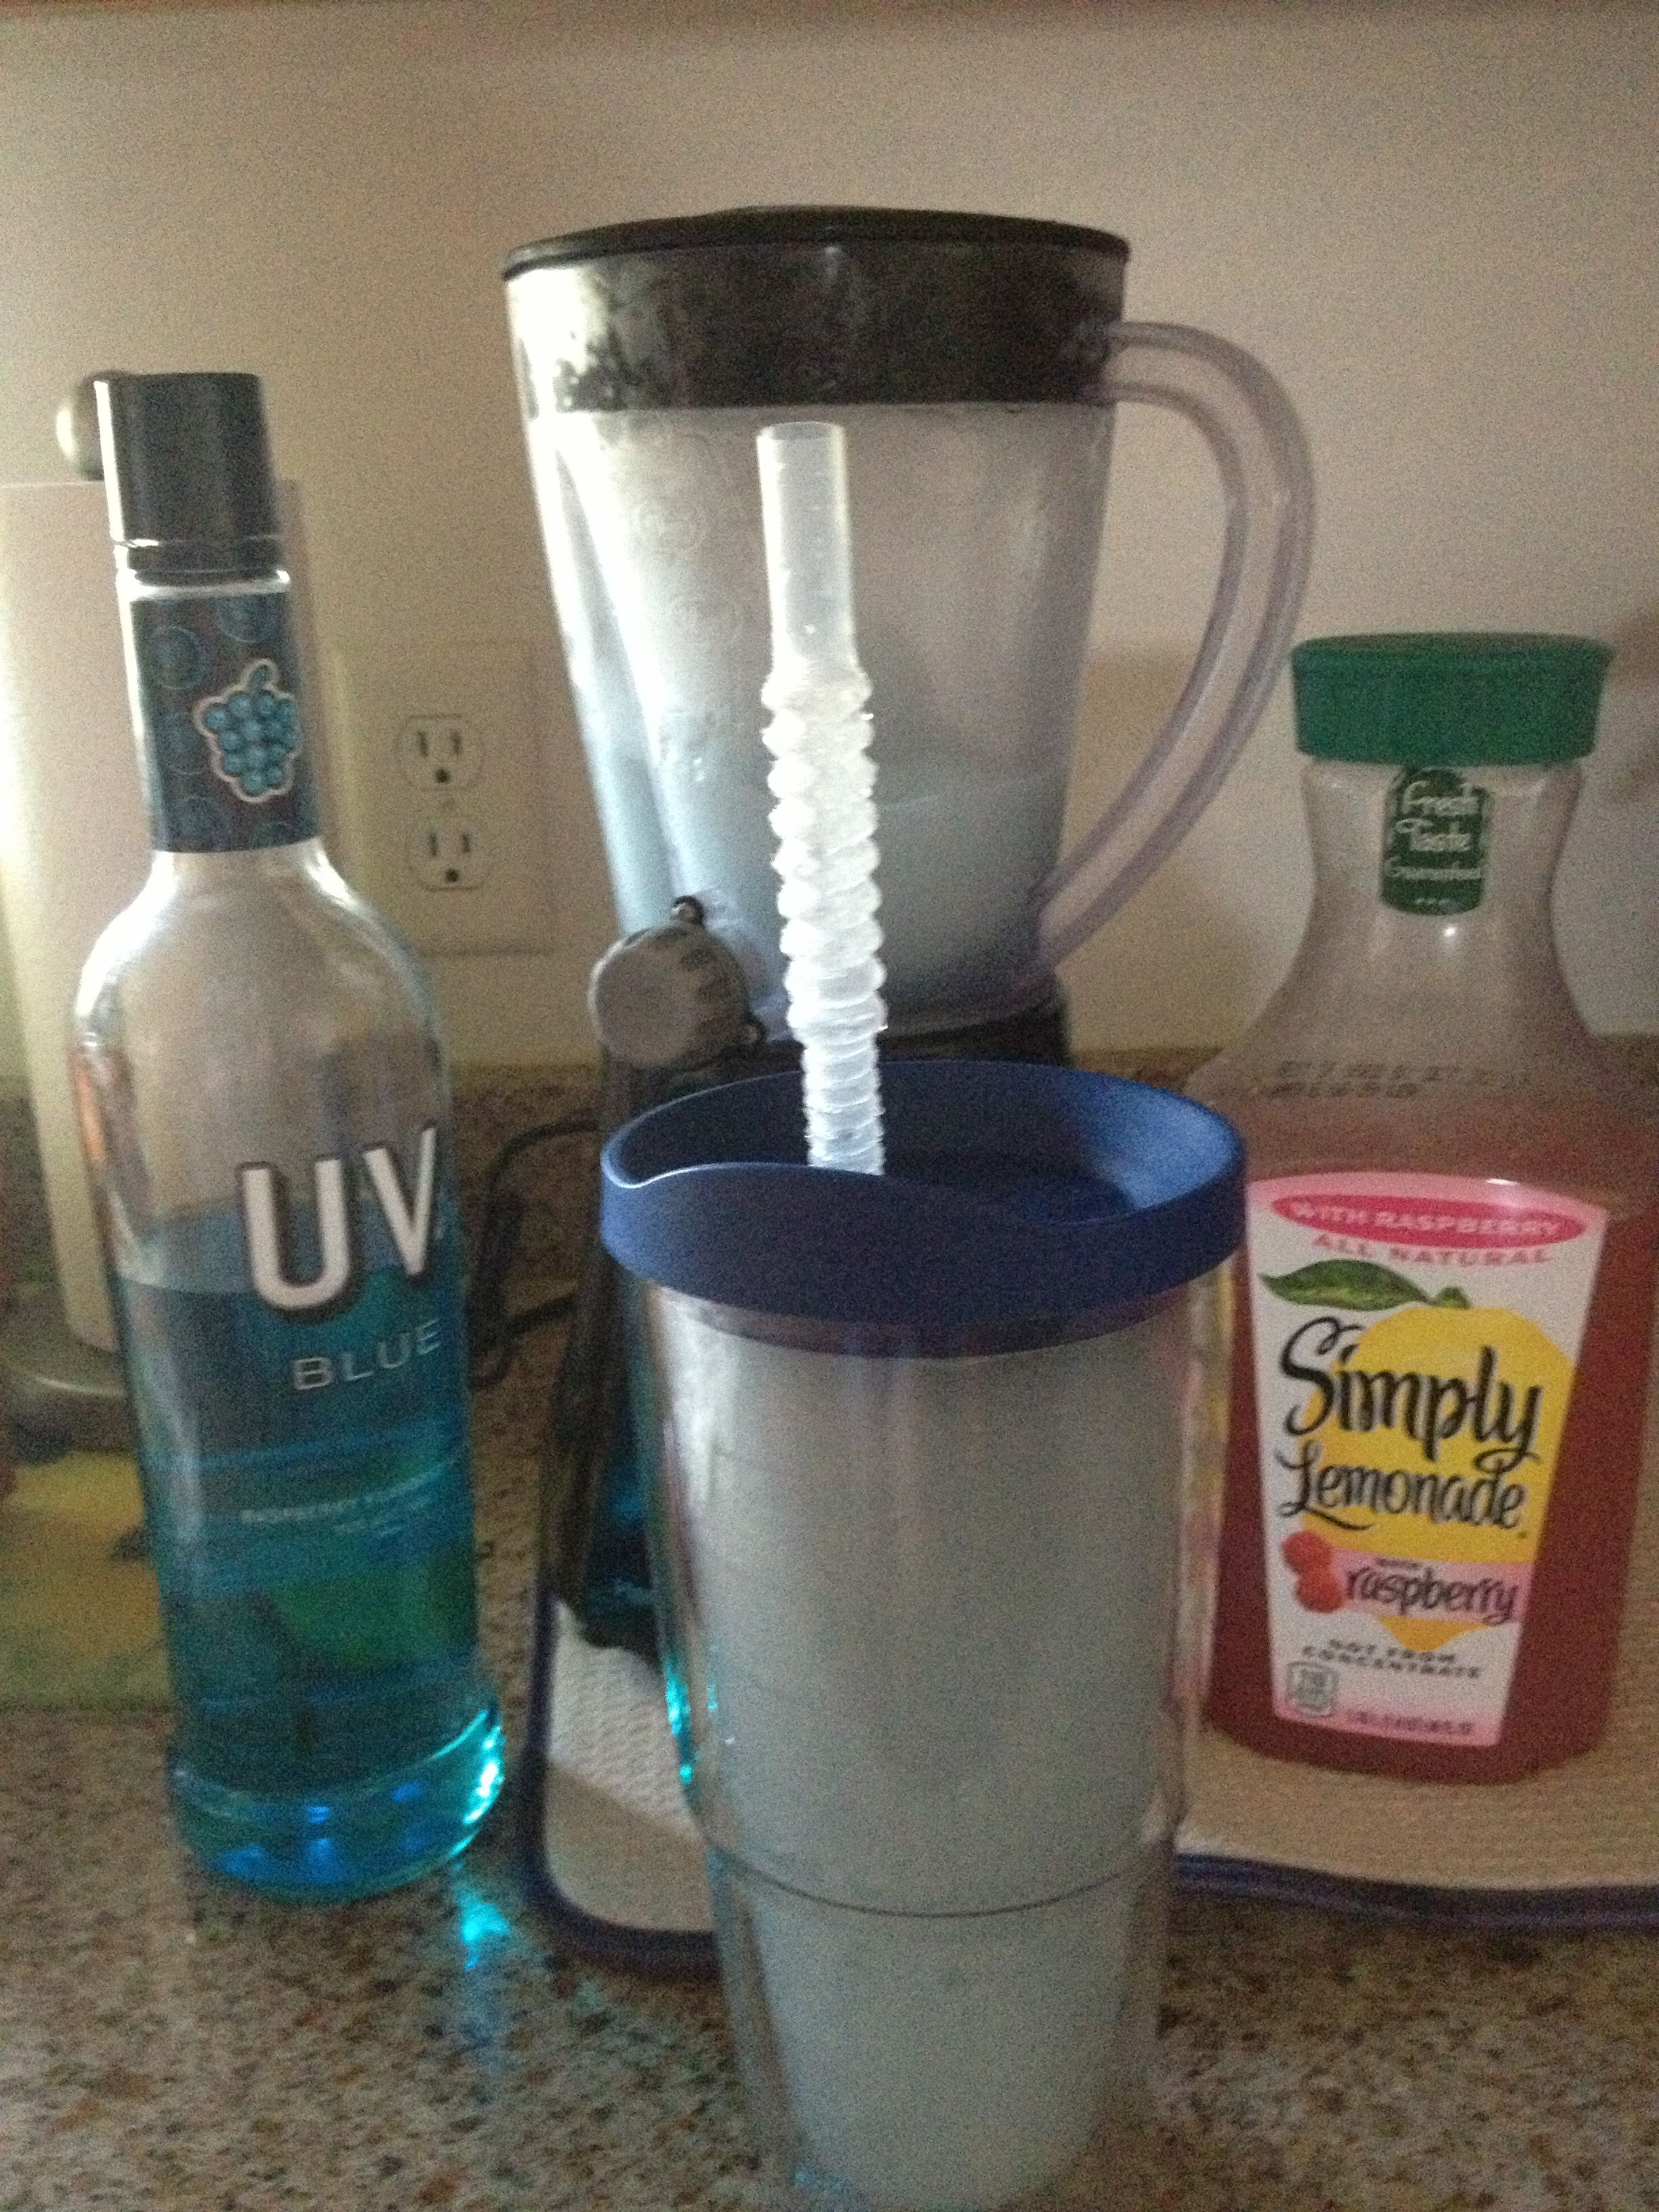 UV Blue Raspberry Vodka,  Simply Lemonade  with Raspberry, Ice and a cheap Walmart blender=yummy frozen drink #raspberryvodka UV Blue Raspberry Vodka,  Simply Lemonade  with Raspberry, Ice and a cheap Walmart blender=yummy frozen drink #raspberryvodka